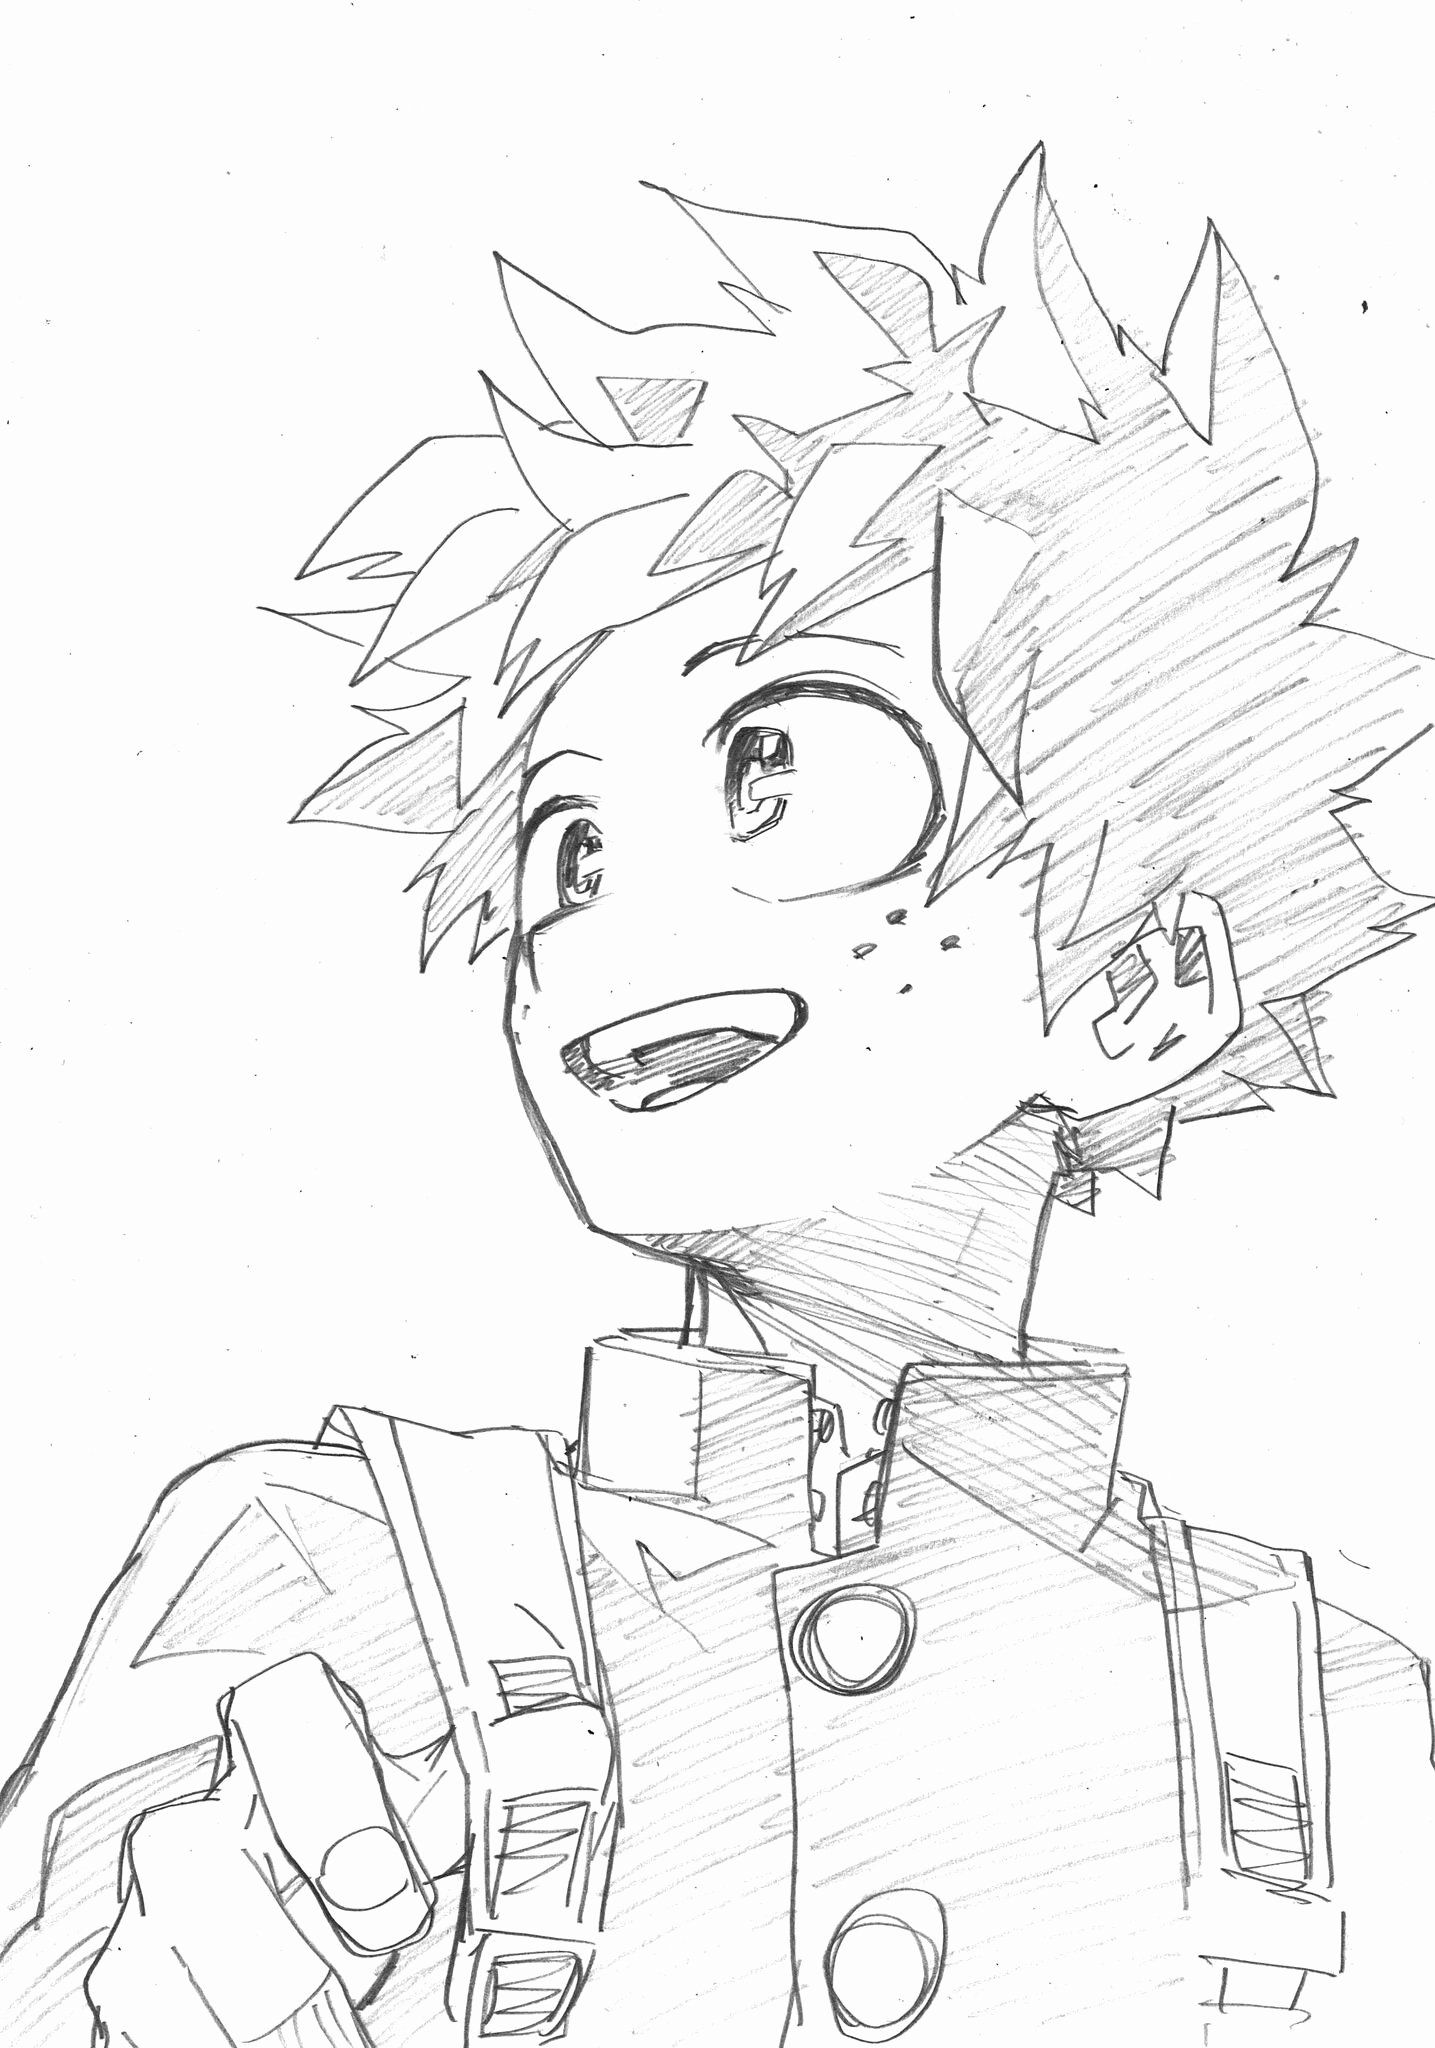 My Hero Academia Coloring Page Best Of Midoriya Coloring Pages In 2020 Anime Sketch Anime Drawings My Hero